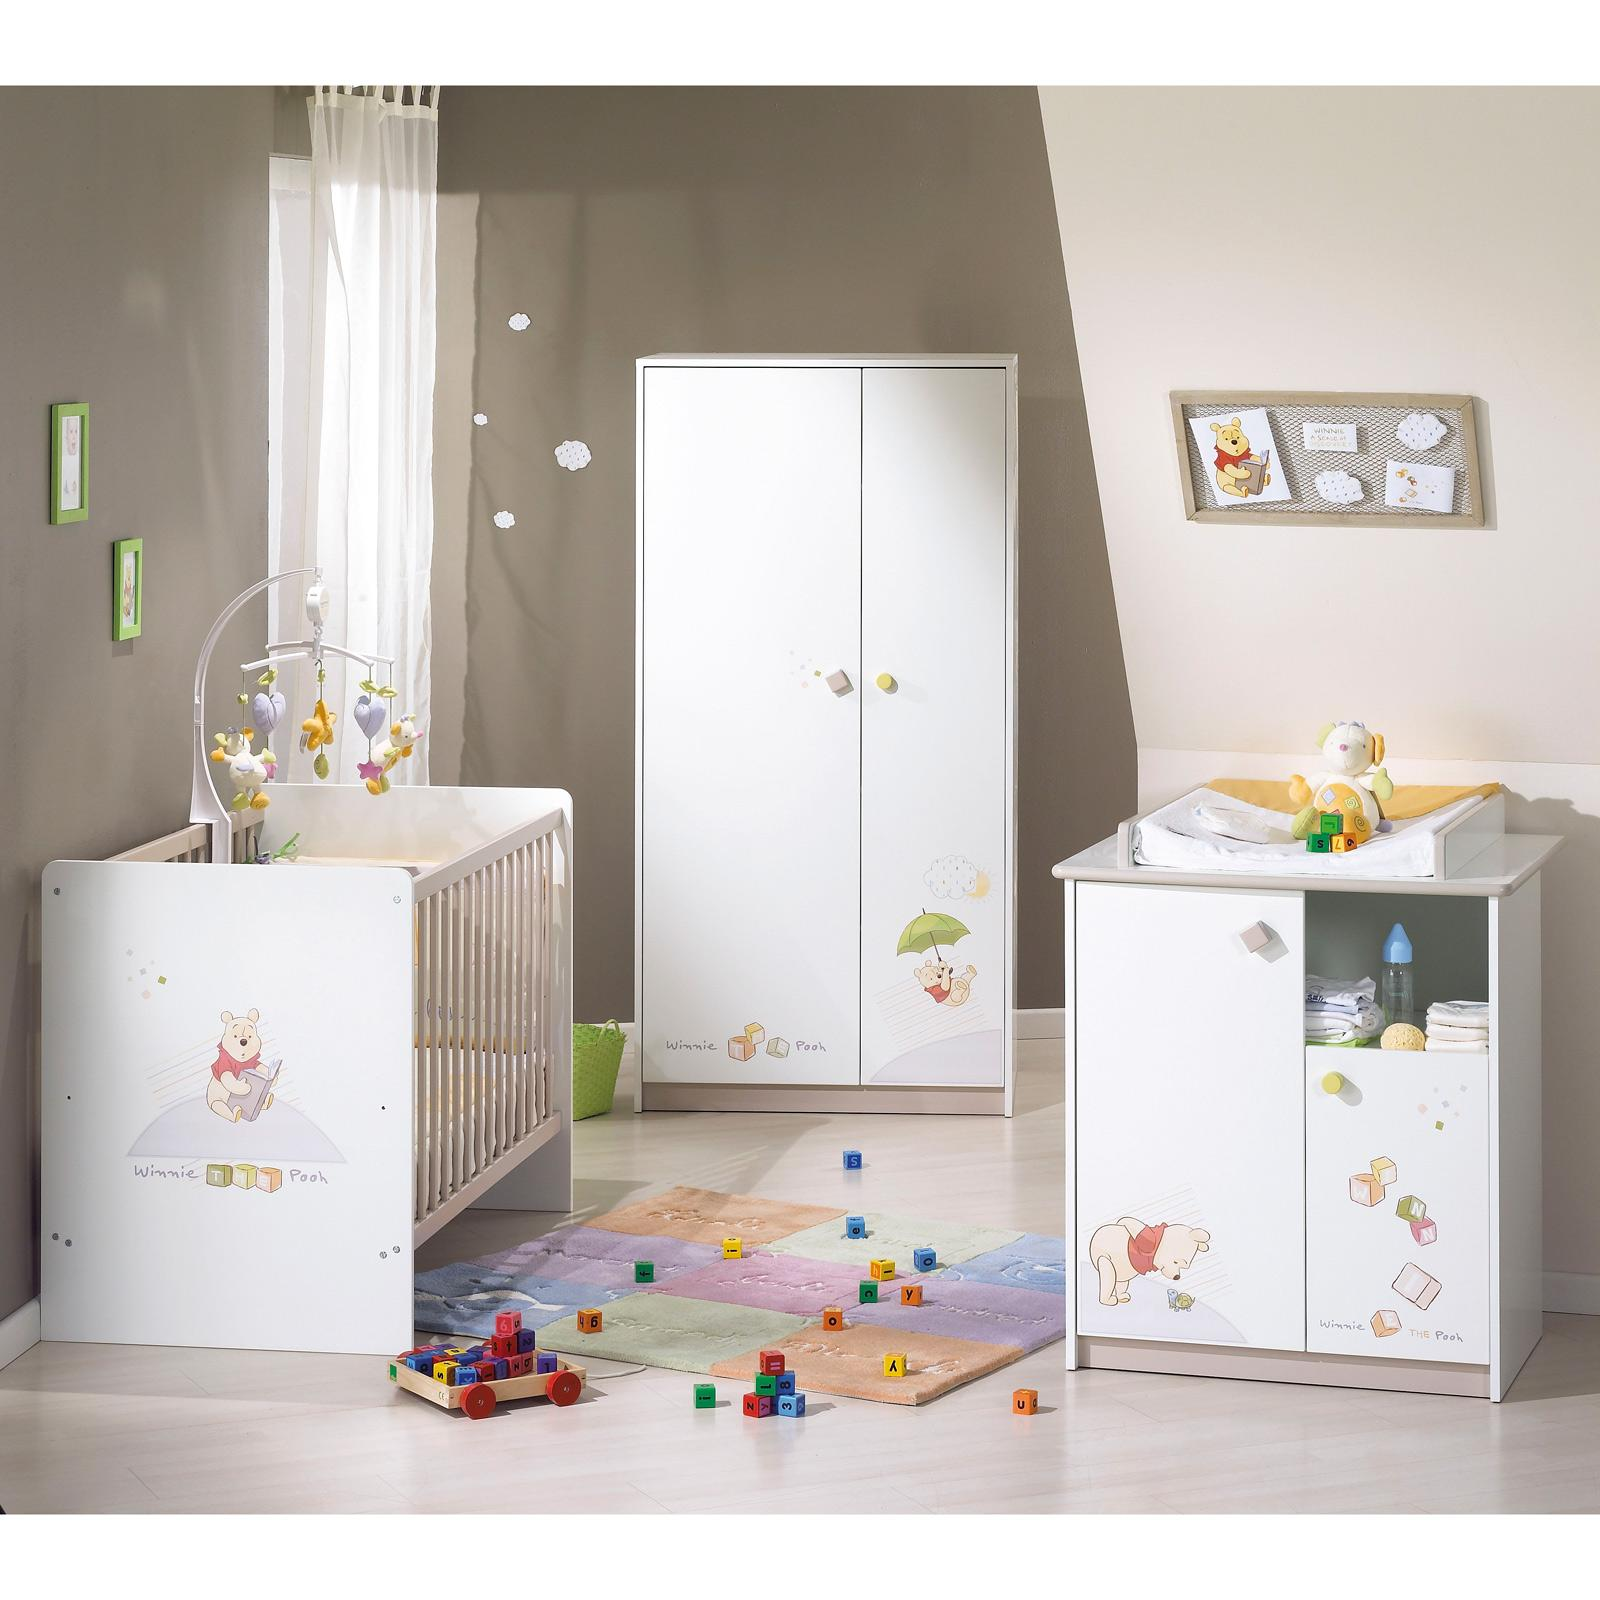 decoration de chambre bebe winnie l ourson. Black Bedroom Furniture Sets. Home Design Ideas